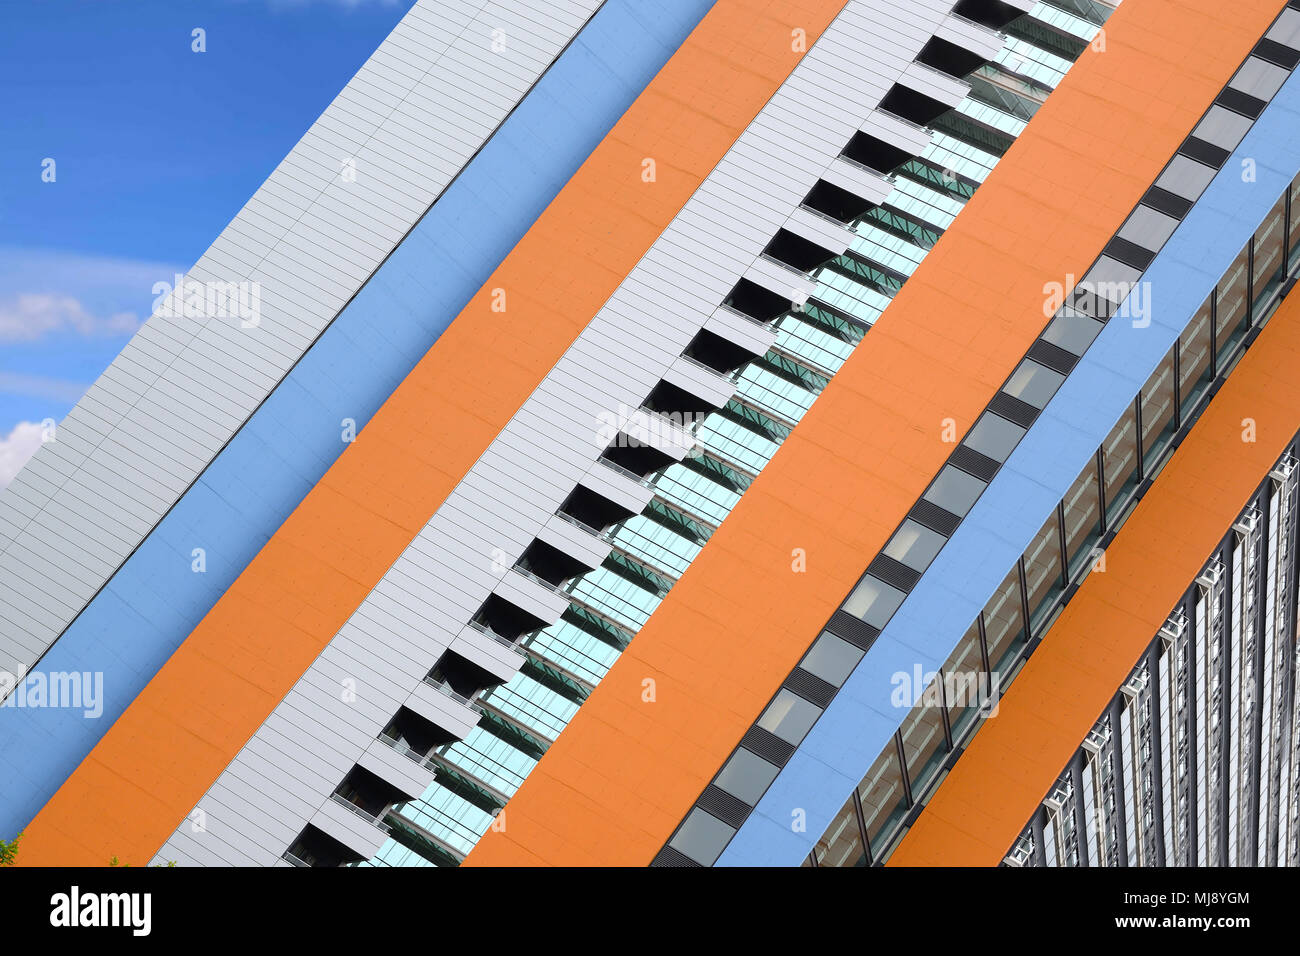 Modern building diagonal disposition. Abstract architectural background with empty copy space for Editor's text. - Stock Image